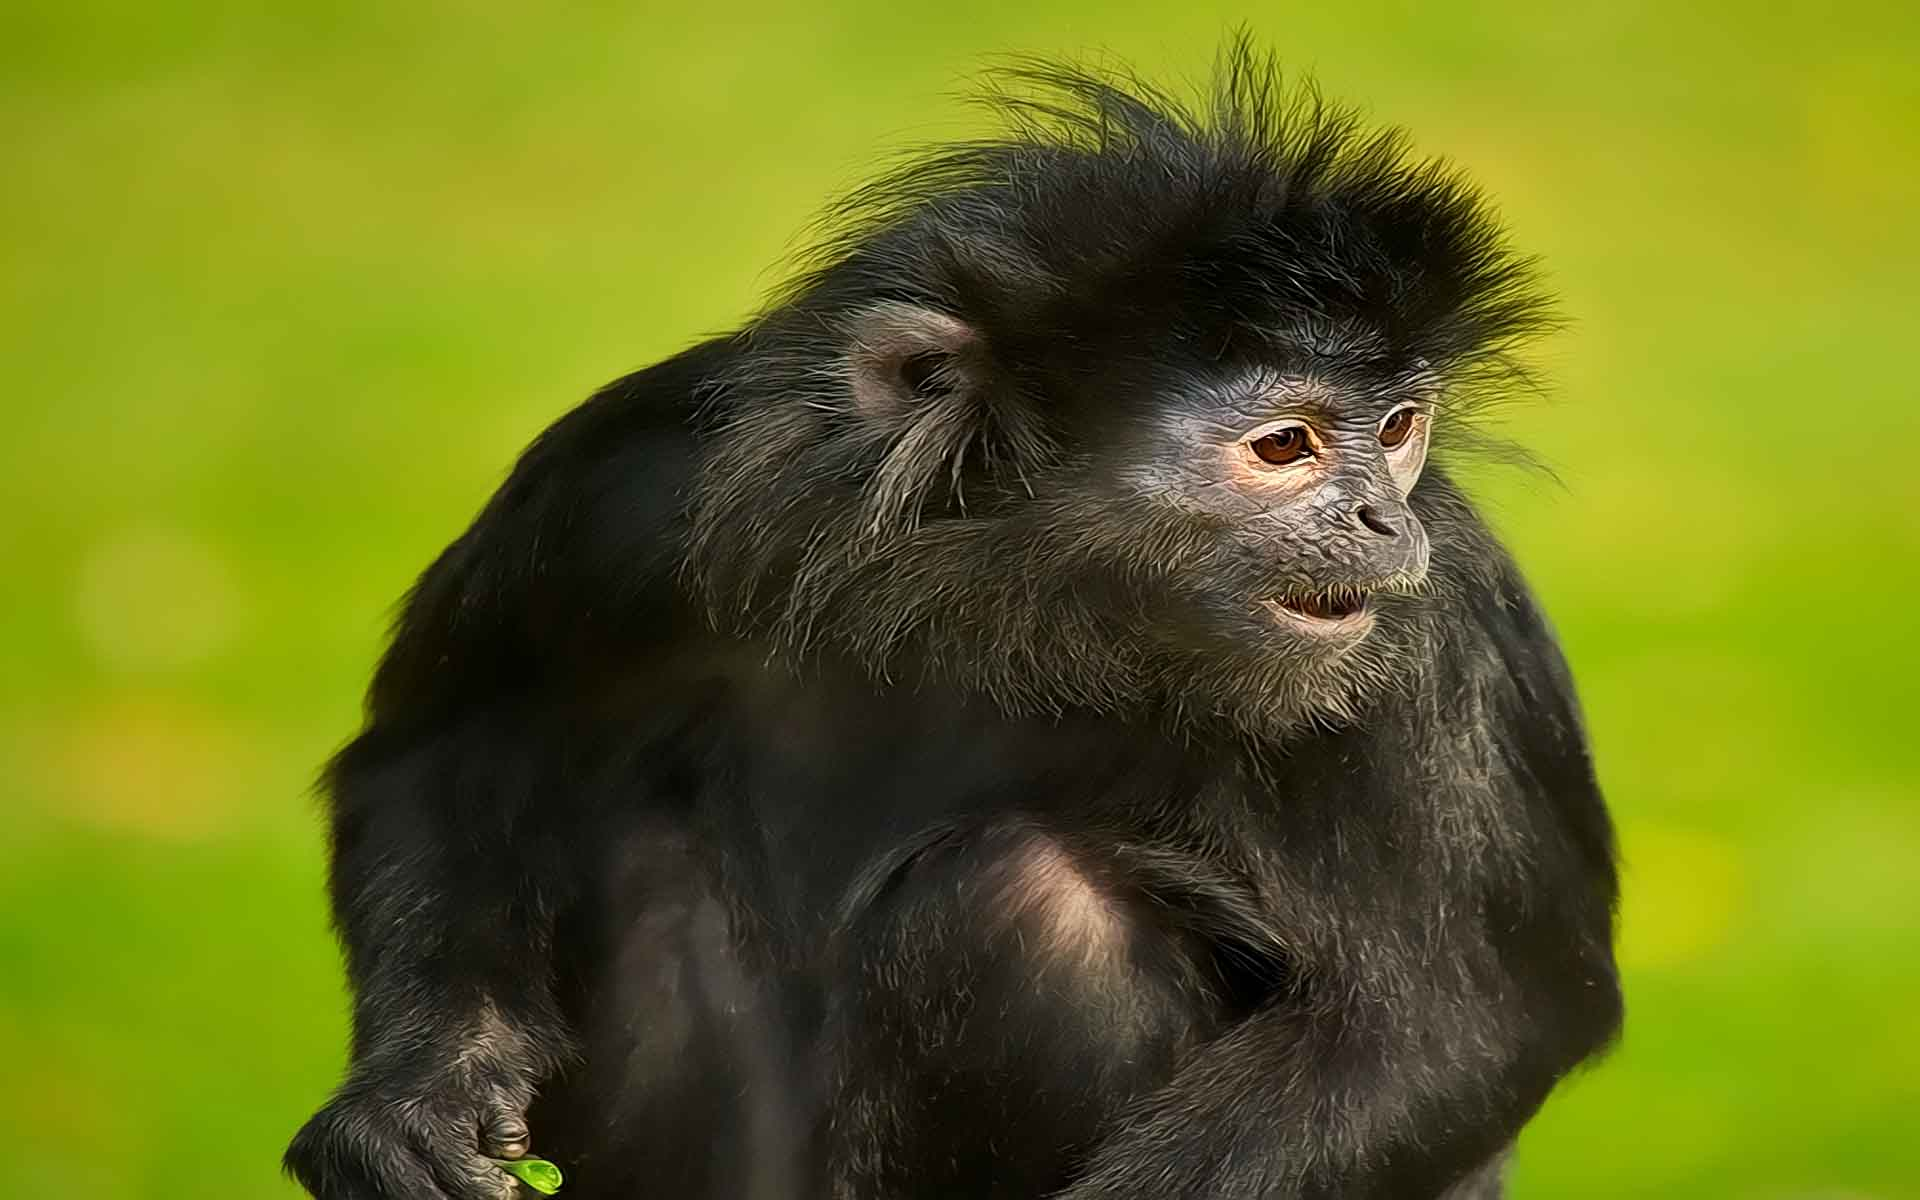 Monkey Wallpapers HD Pictures One HD Wallpaper Pictures